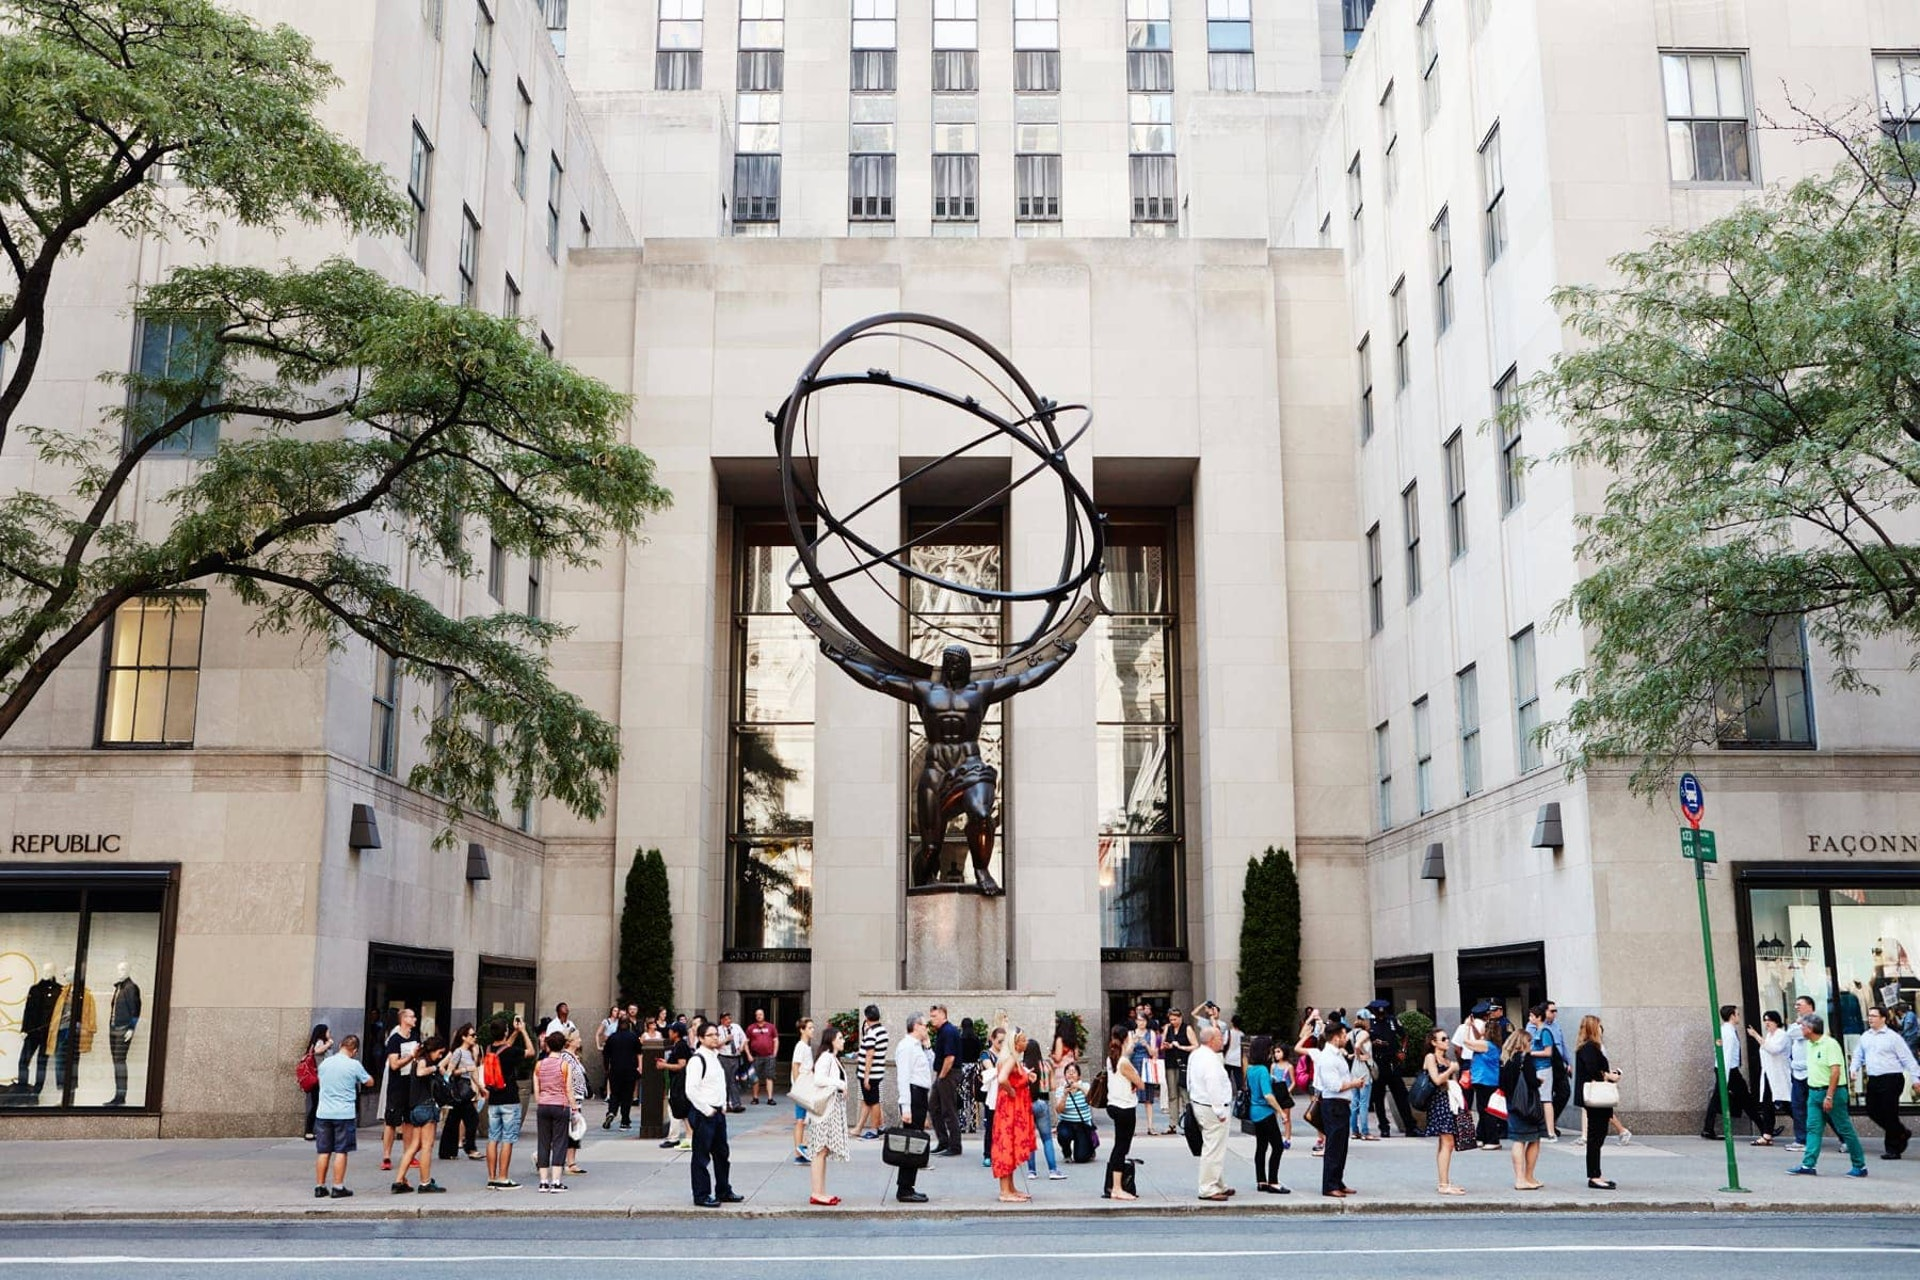 Sculpture outside Rockefeller Center, New York